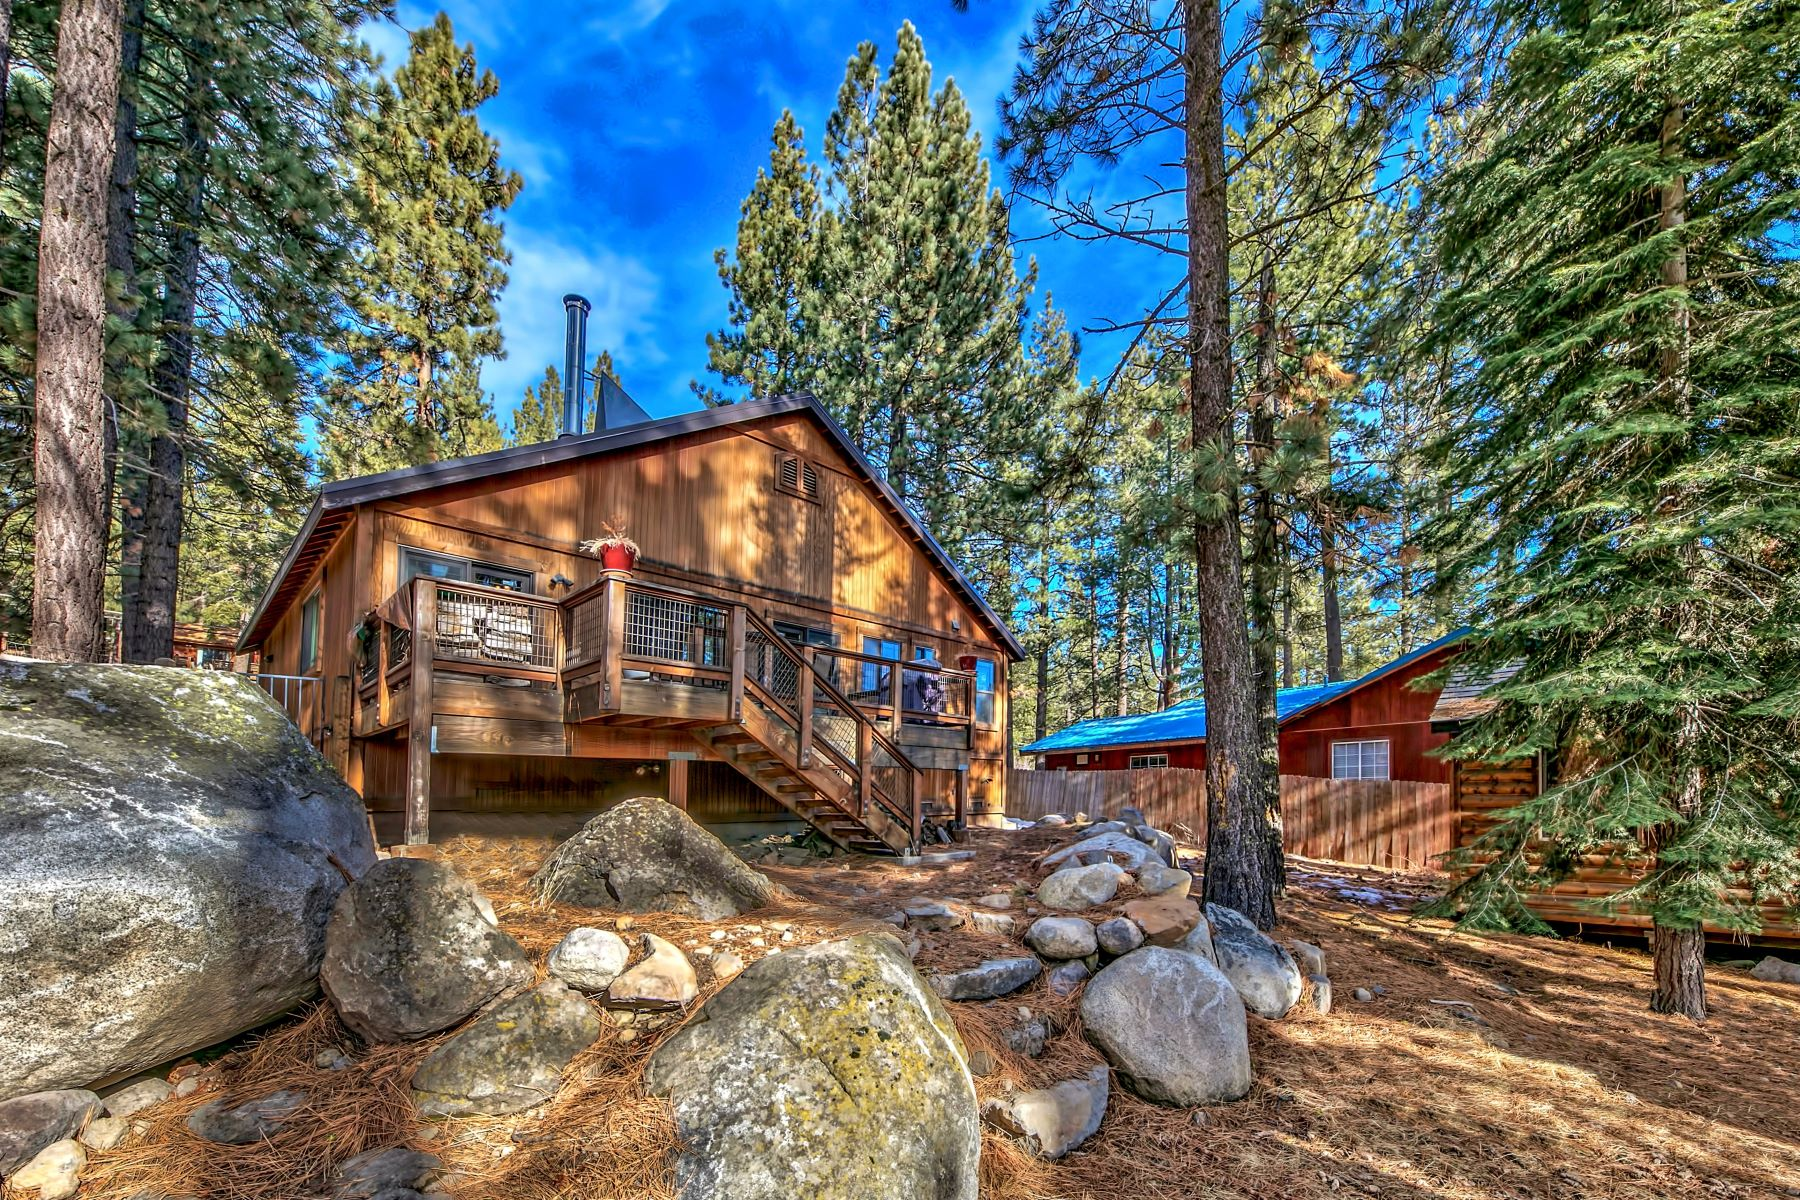 Single Family Home for Active at 12161 East Sierra Drive, Truckee, CA 12161 E Sierra Drive Truckee, California 96161 United States